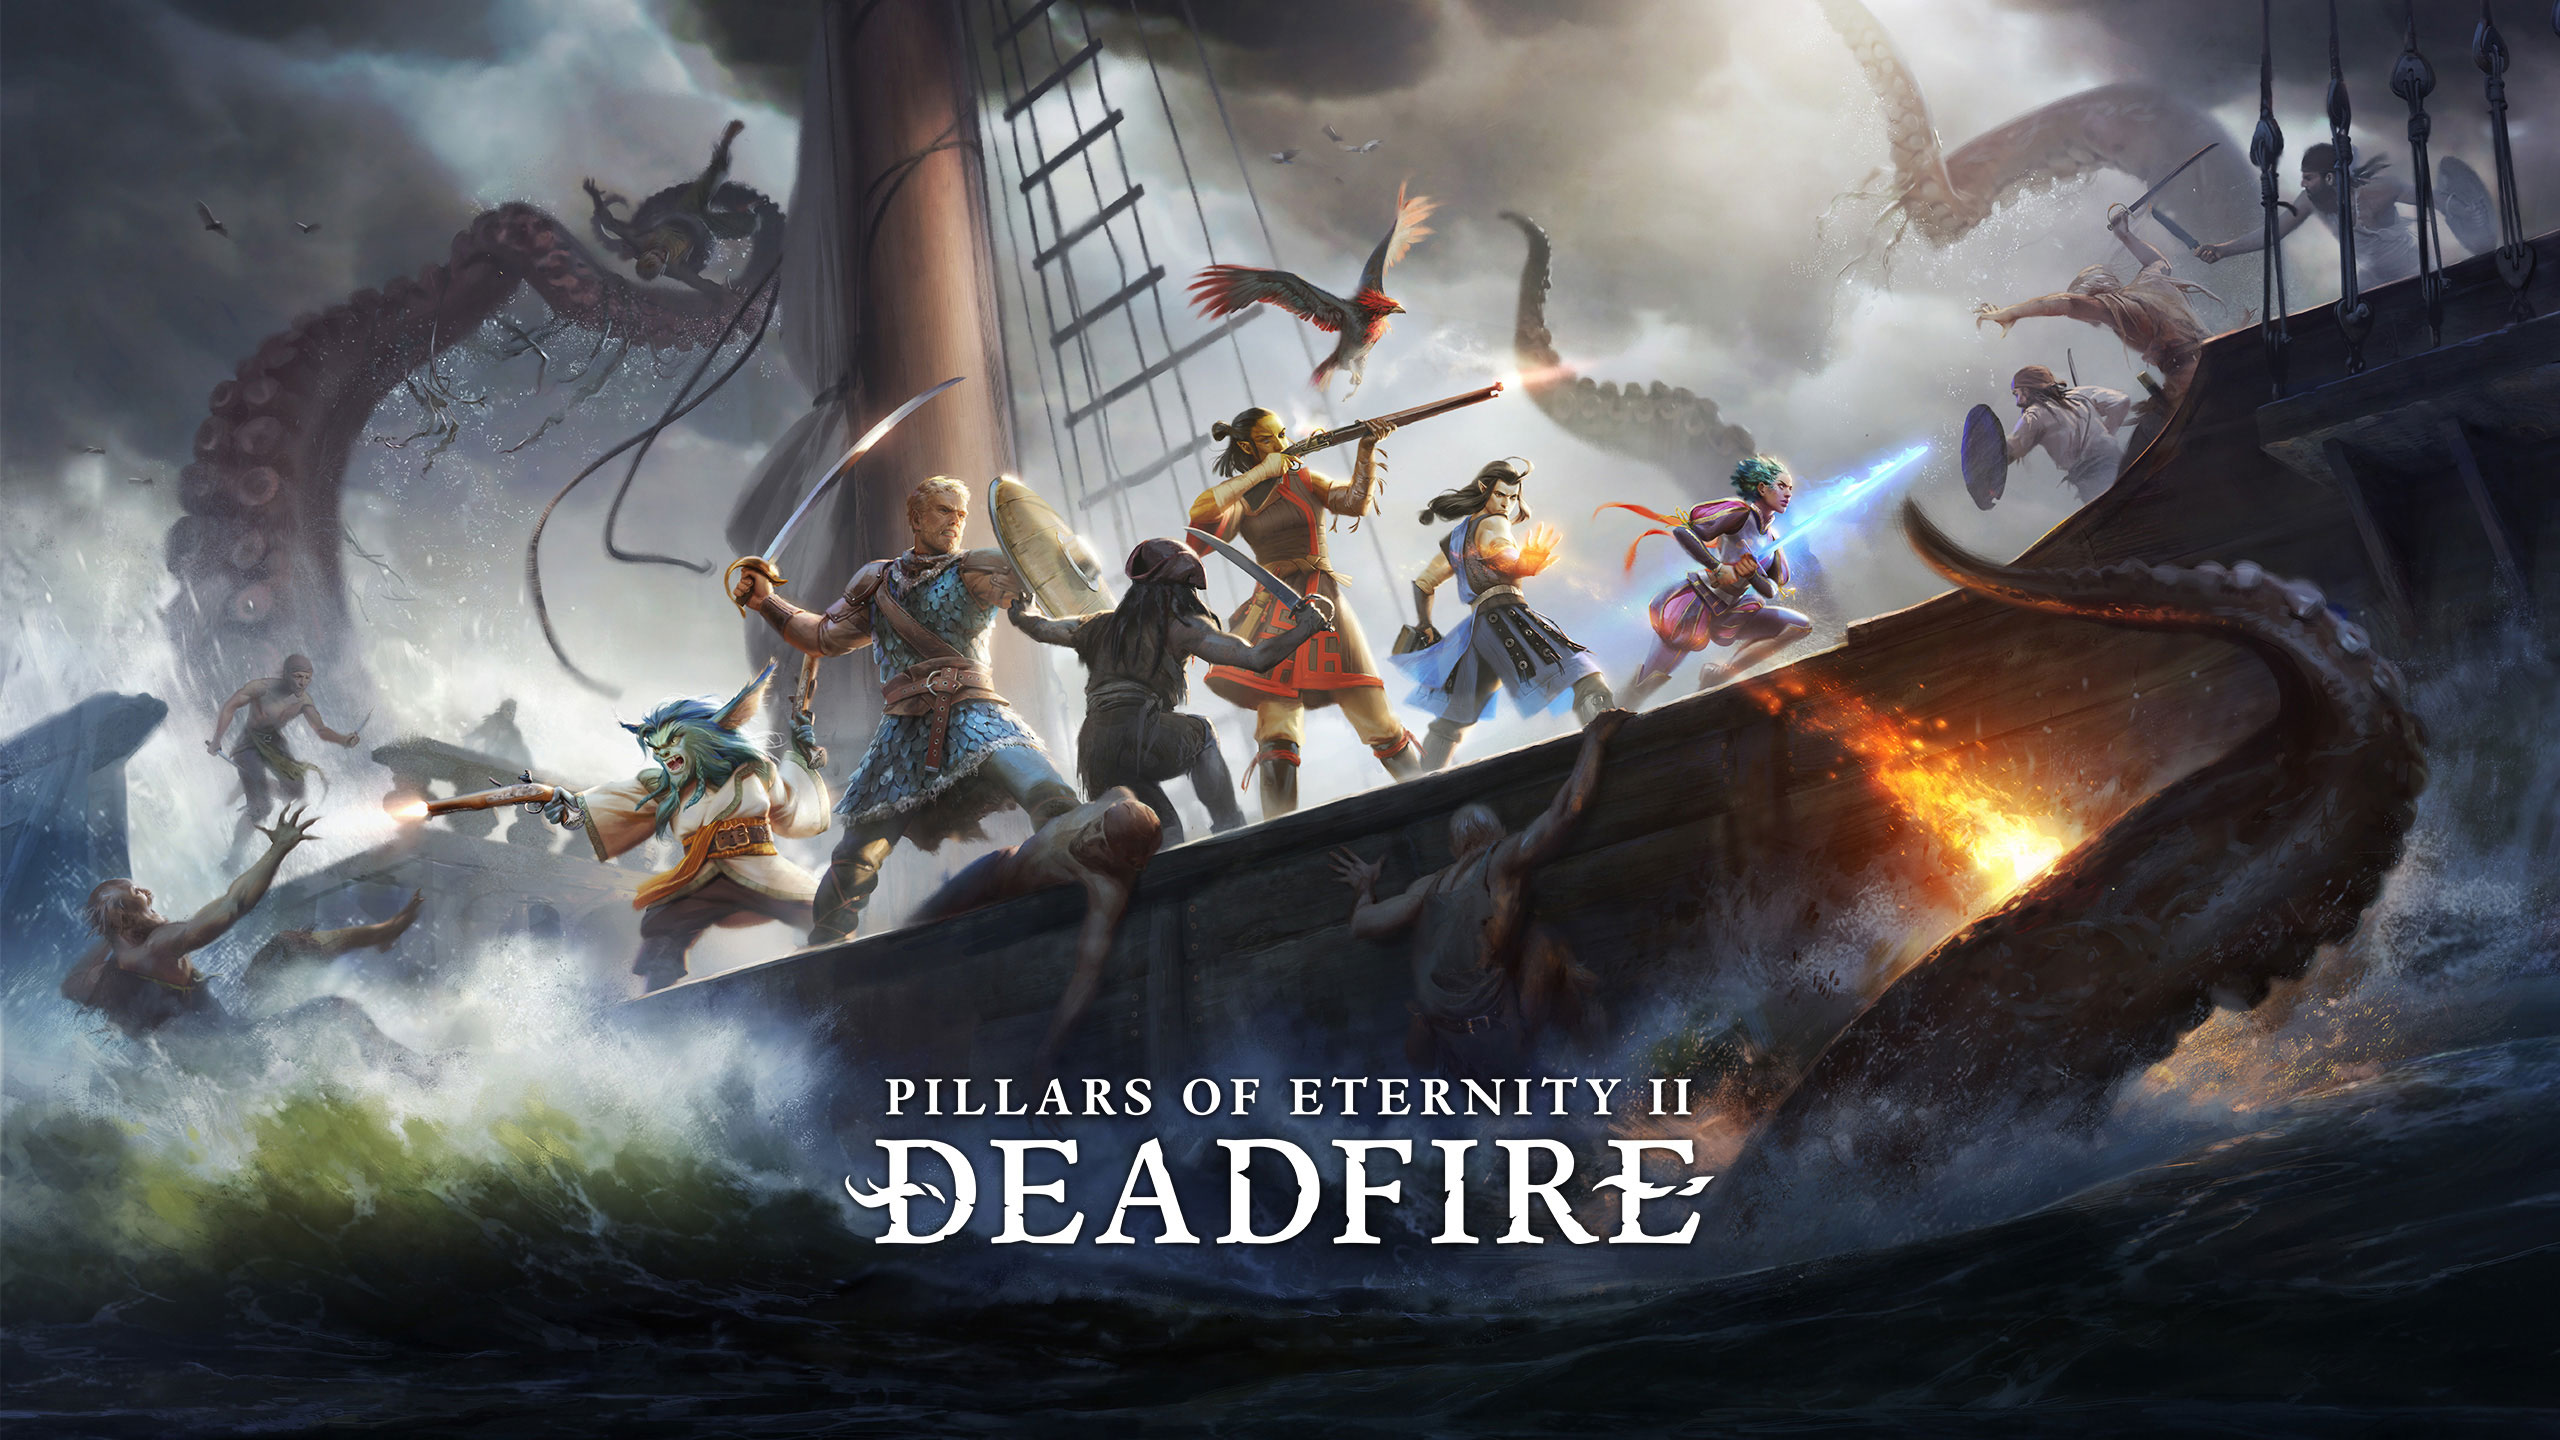 visuel officiel de Pillars of Eternity 2: Deadfire